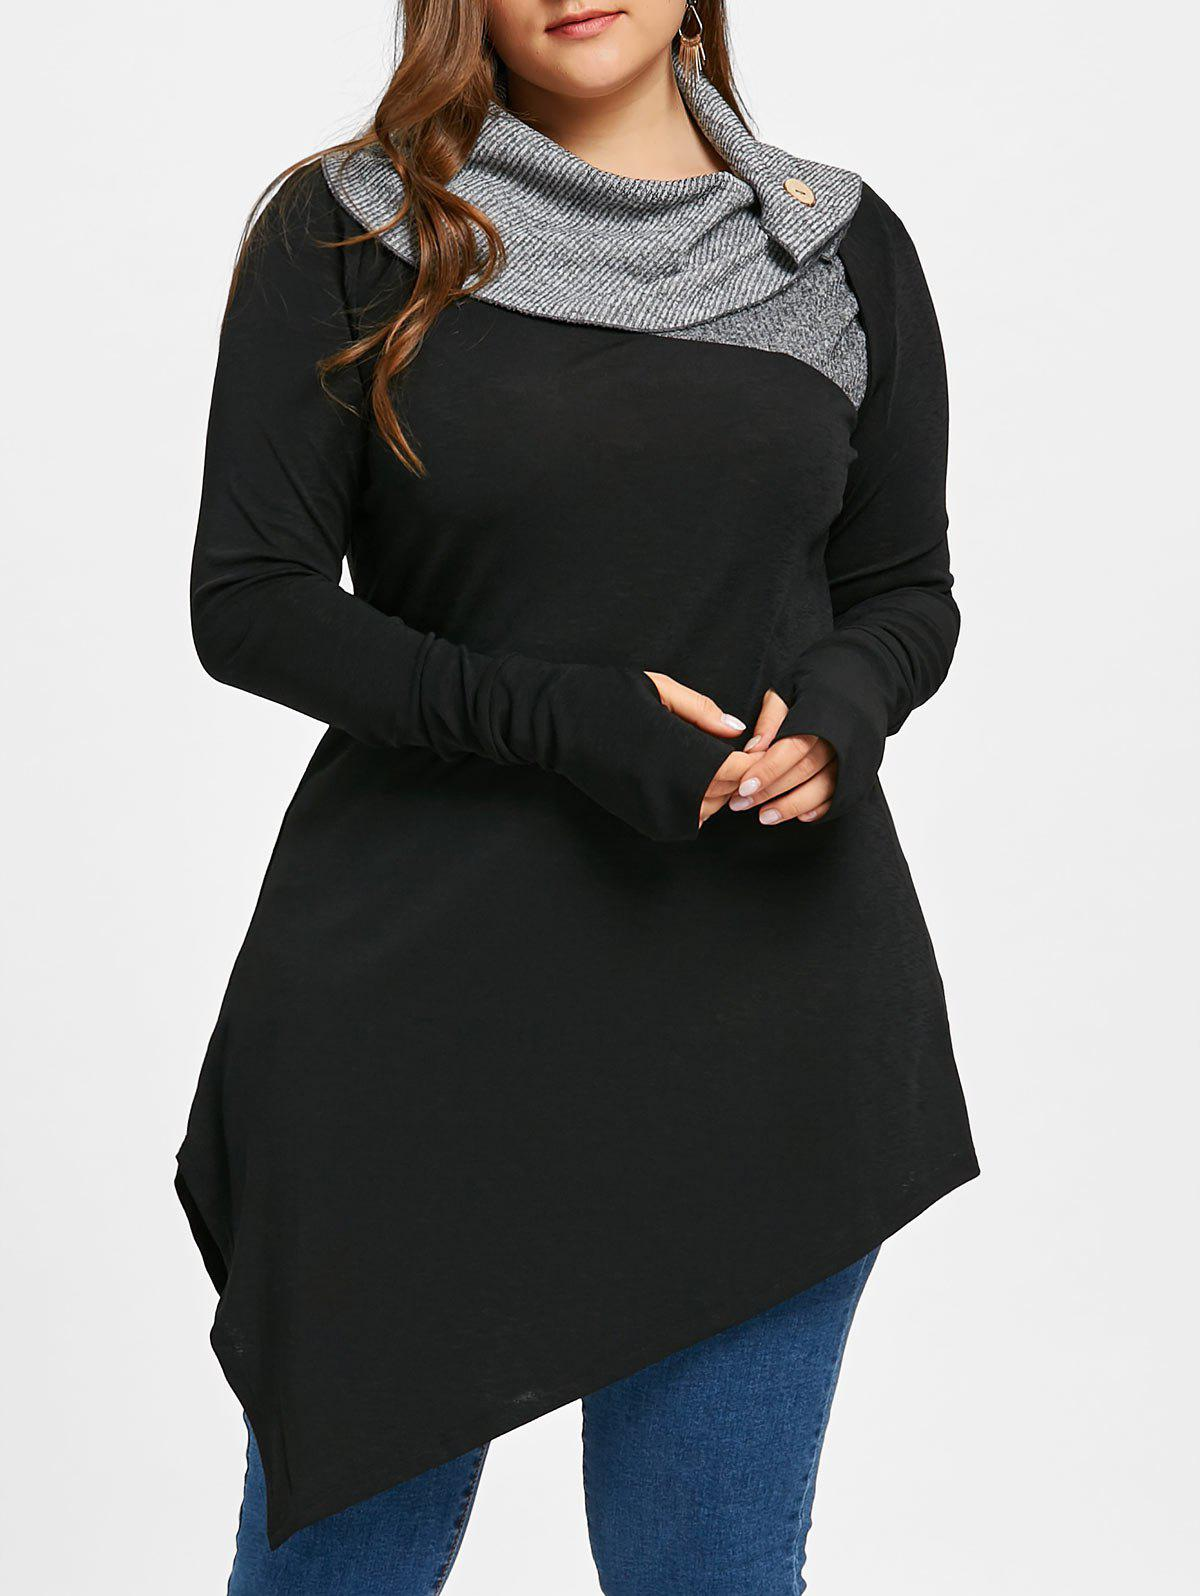 Plus Size Thumb Hole Asymmetrical Longline TopWOMEN<br><br>Size: XL; Color: BLACK; Material: Polyester; Shirt Length: Long; Sleeve Length: Full; Collar: Turn-down Collar; Style: Casual; Season: Fall,Spring; Embellishment: Button; Pattern Type: Solid; Weight: 0.4200kg; Package Contents: 1 x Top;